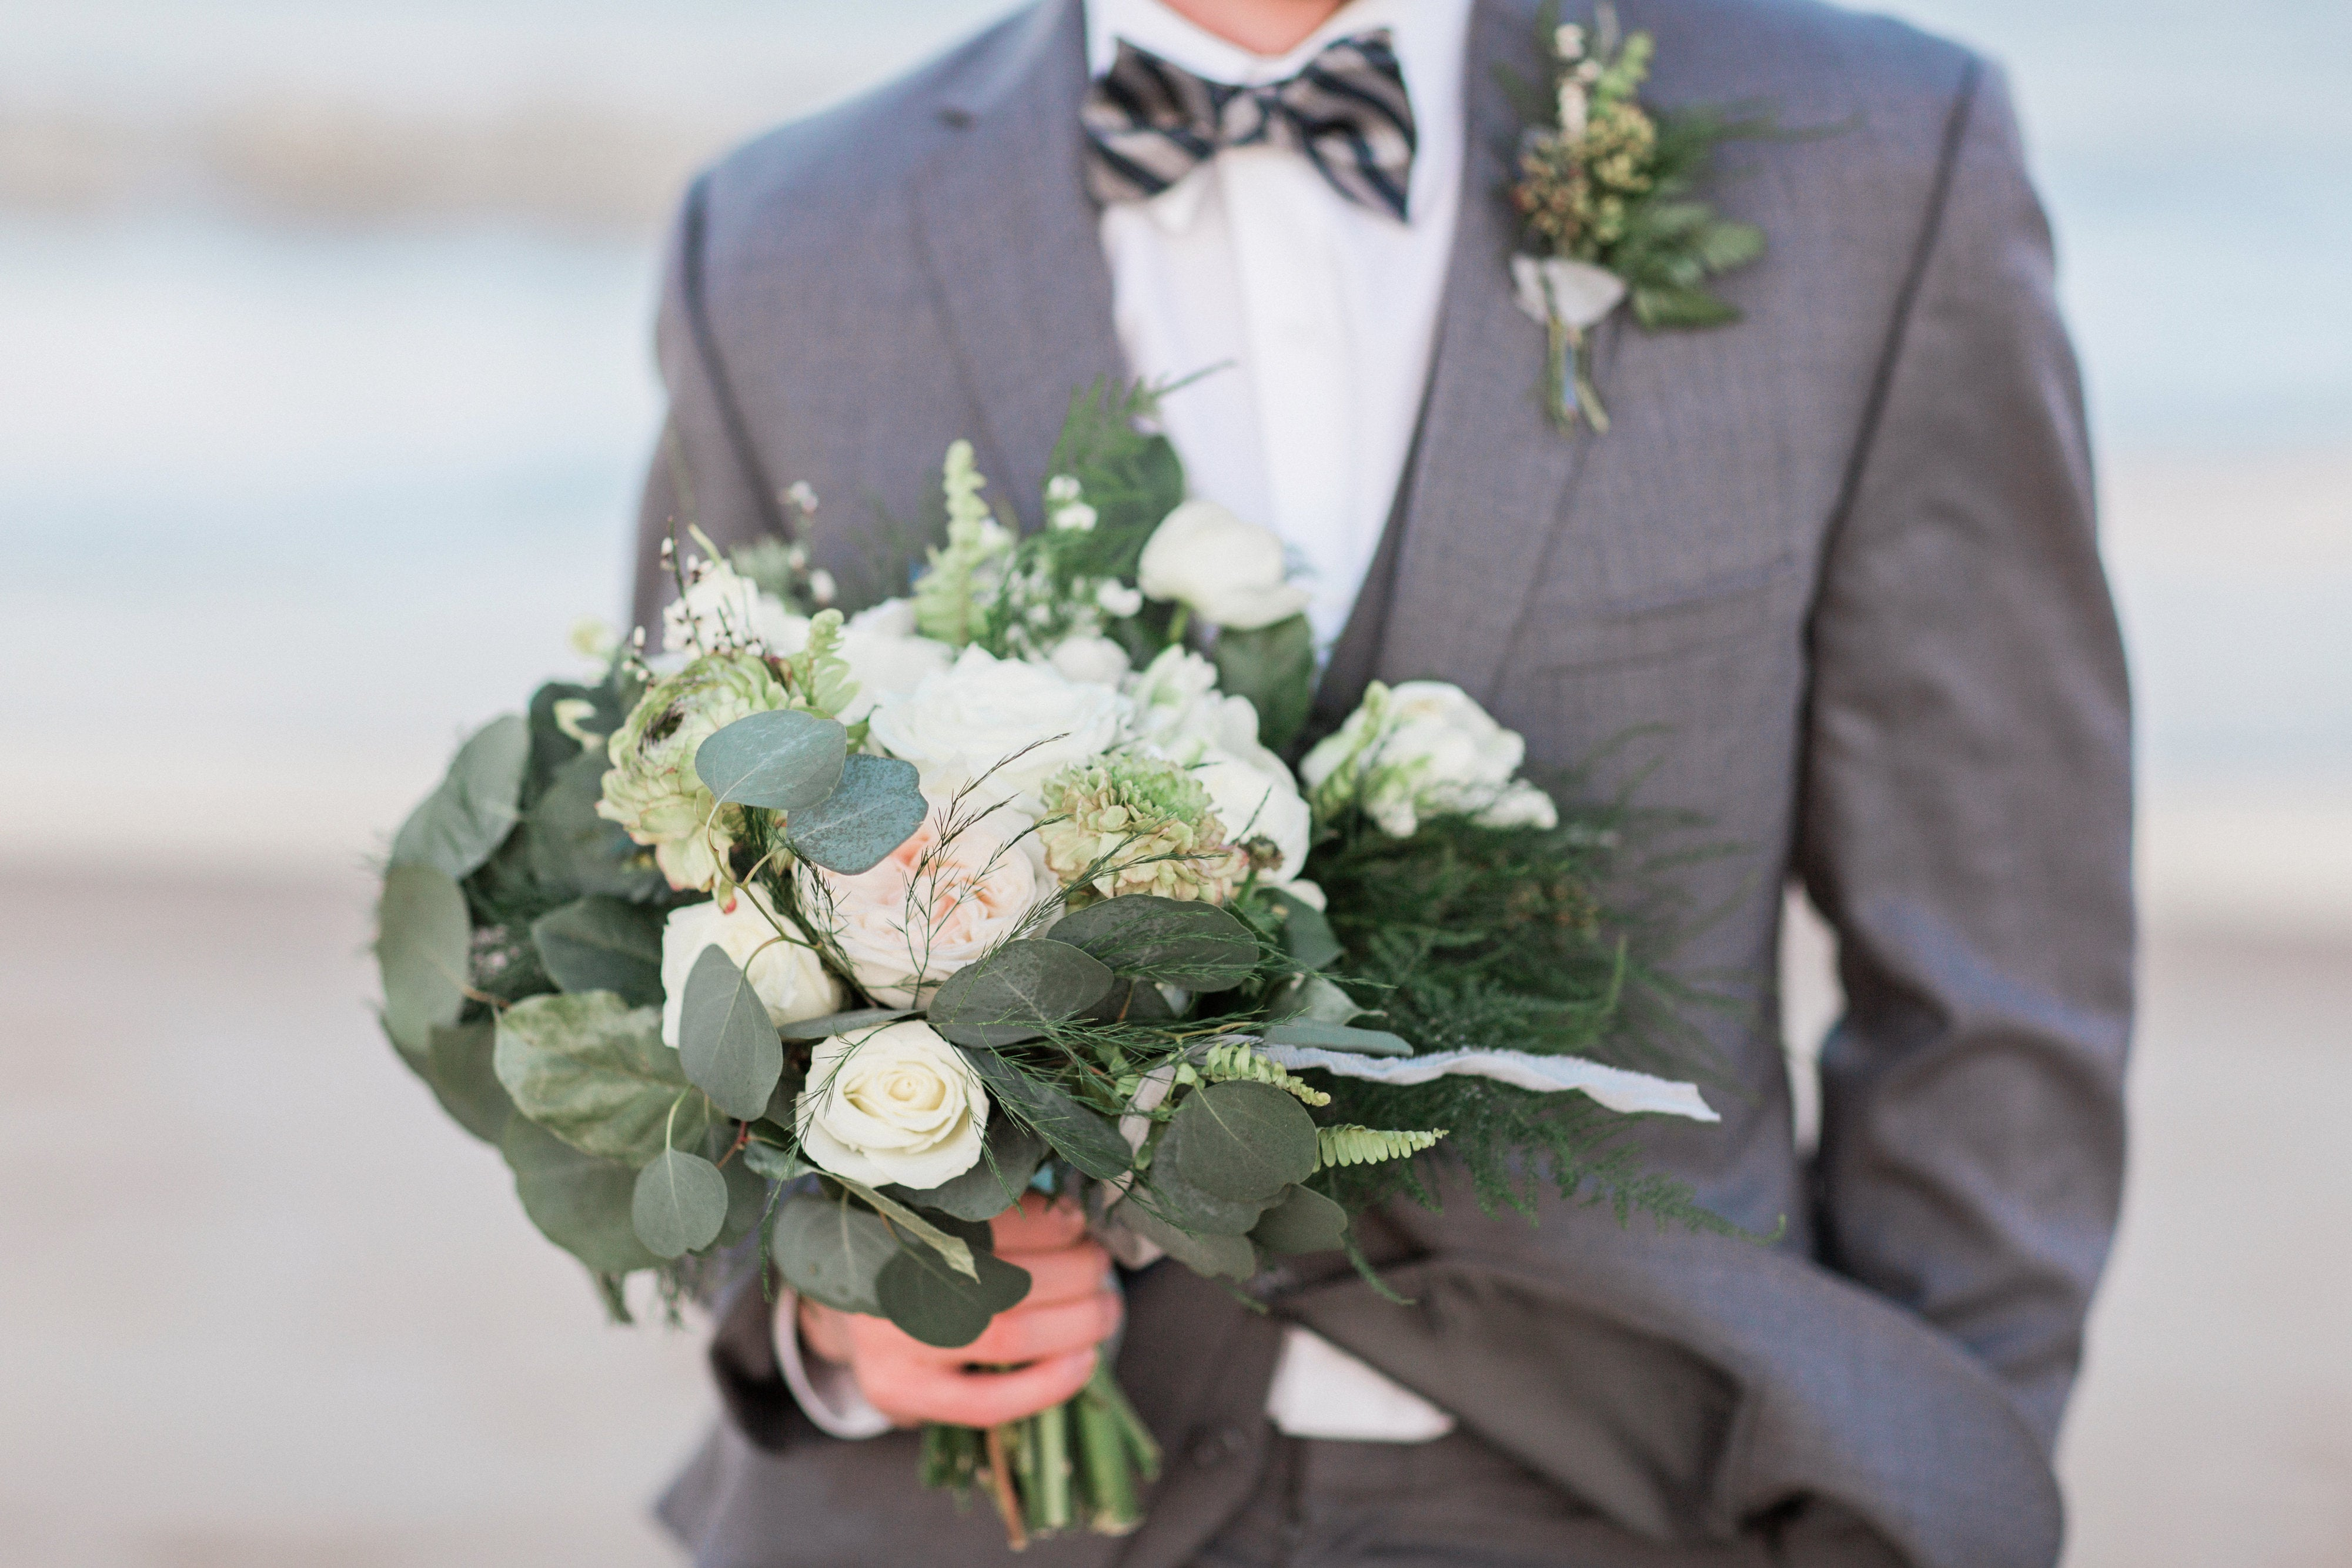 little miss lovely floral design // classic white and green spring beach wedding //  Dyanna LaMora Photography // cape henlopen wedding deleware